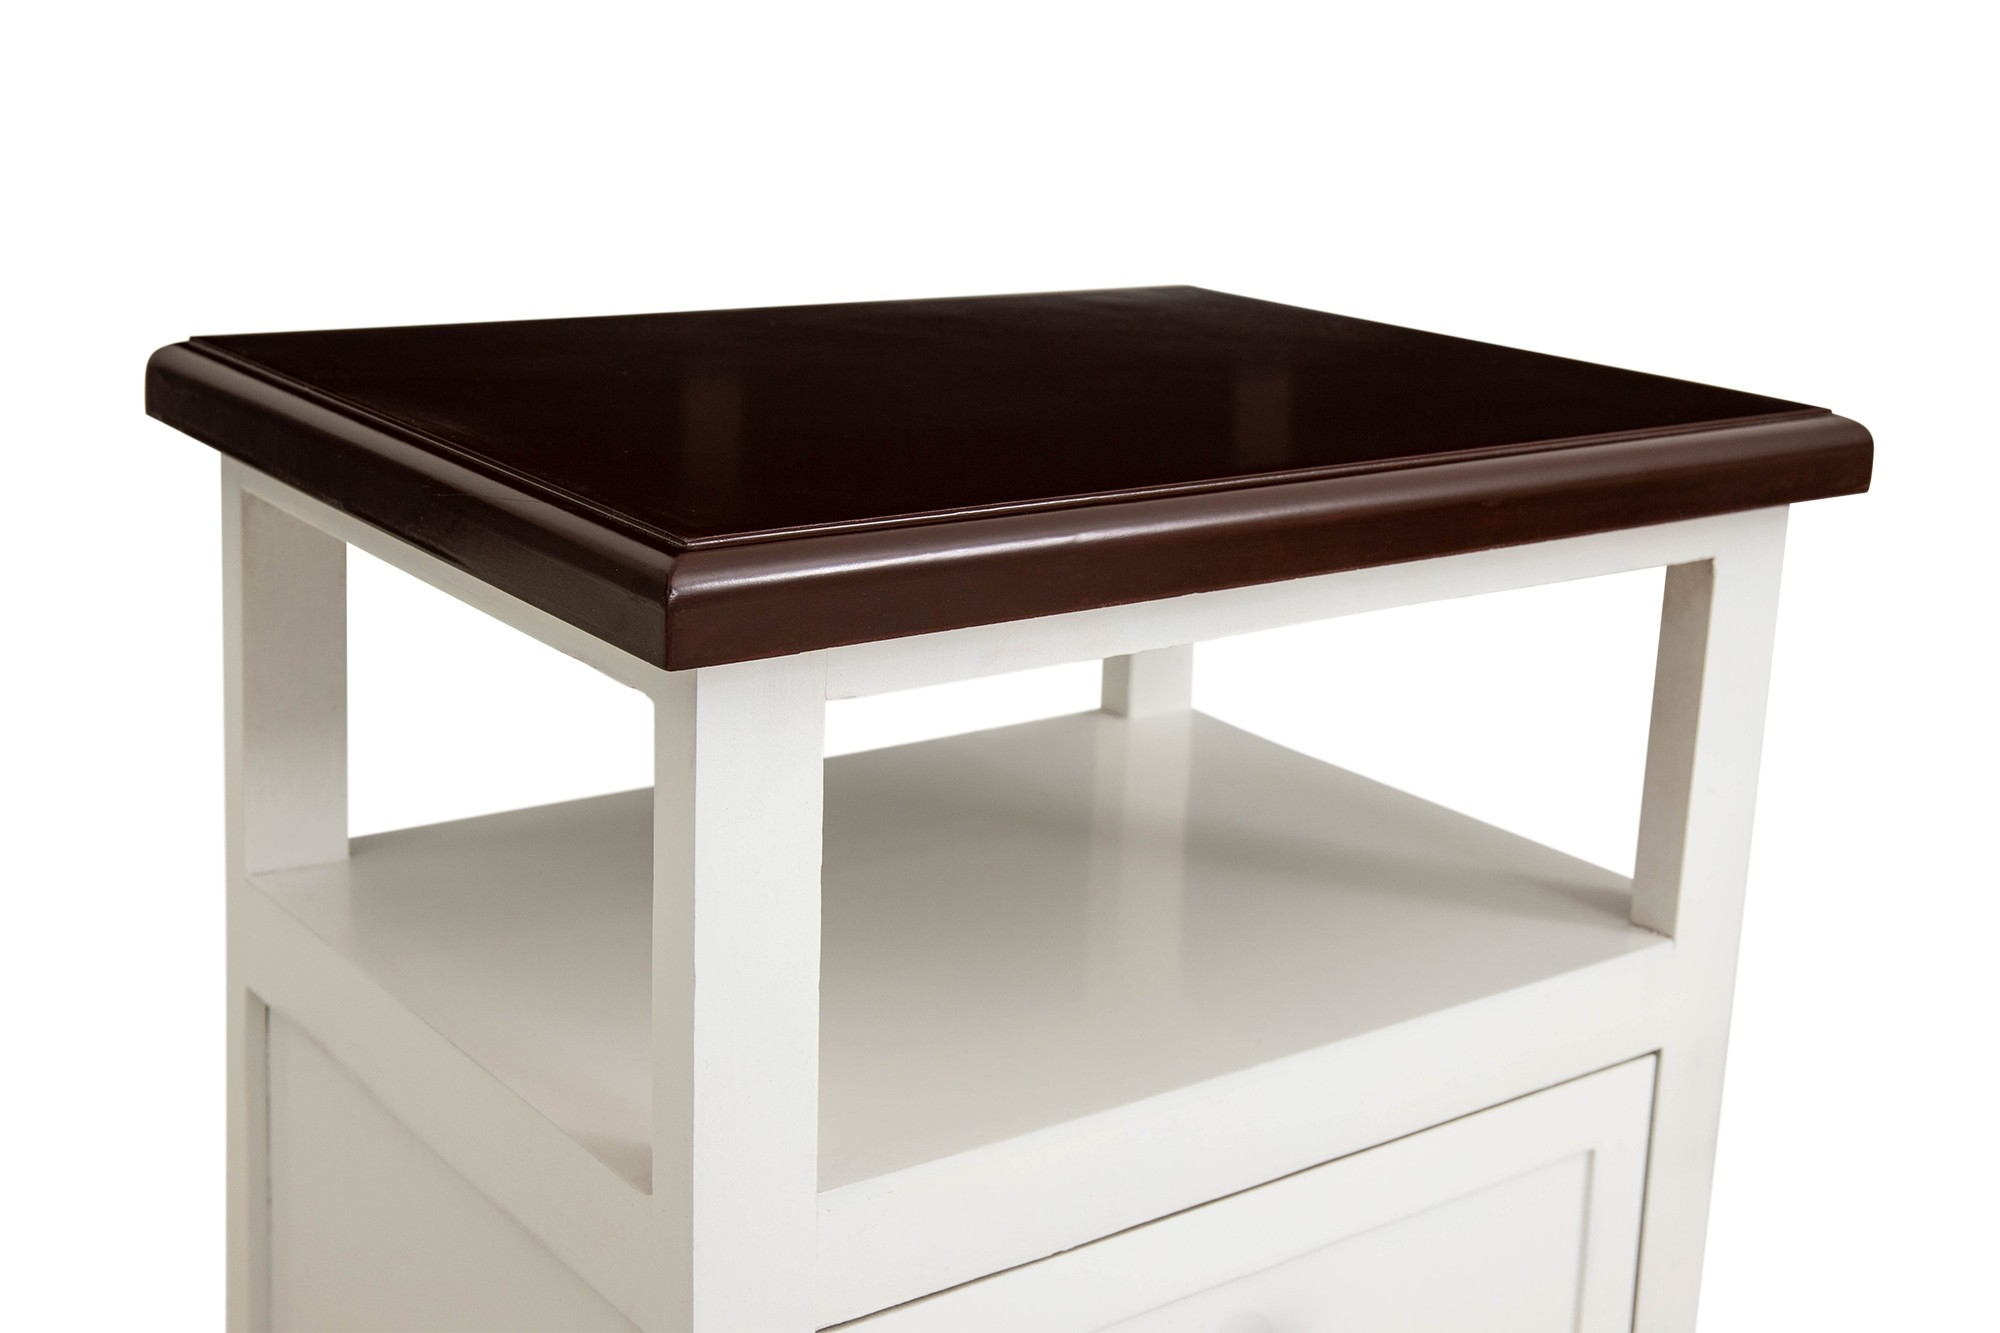 Lovelyn 2 Drawer Wooden Bedside Table Dark Brown Top Furniture Home Decor Fortytwo